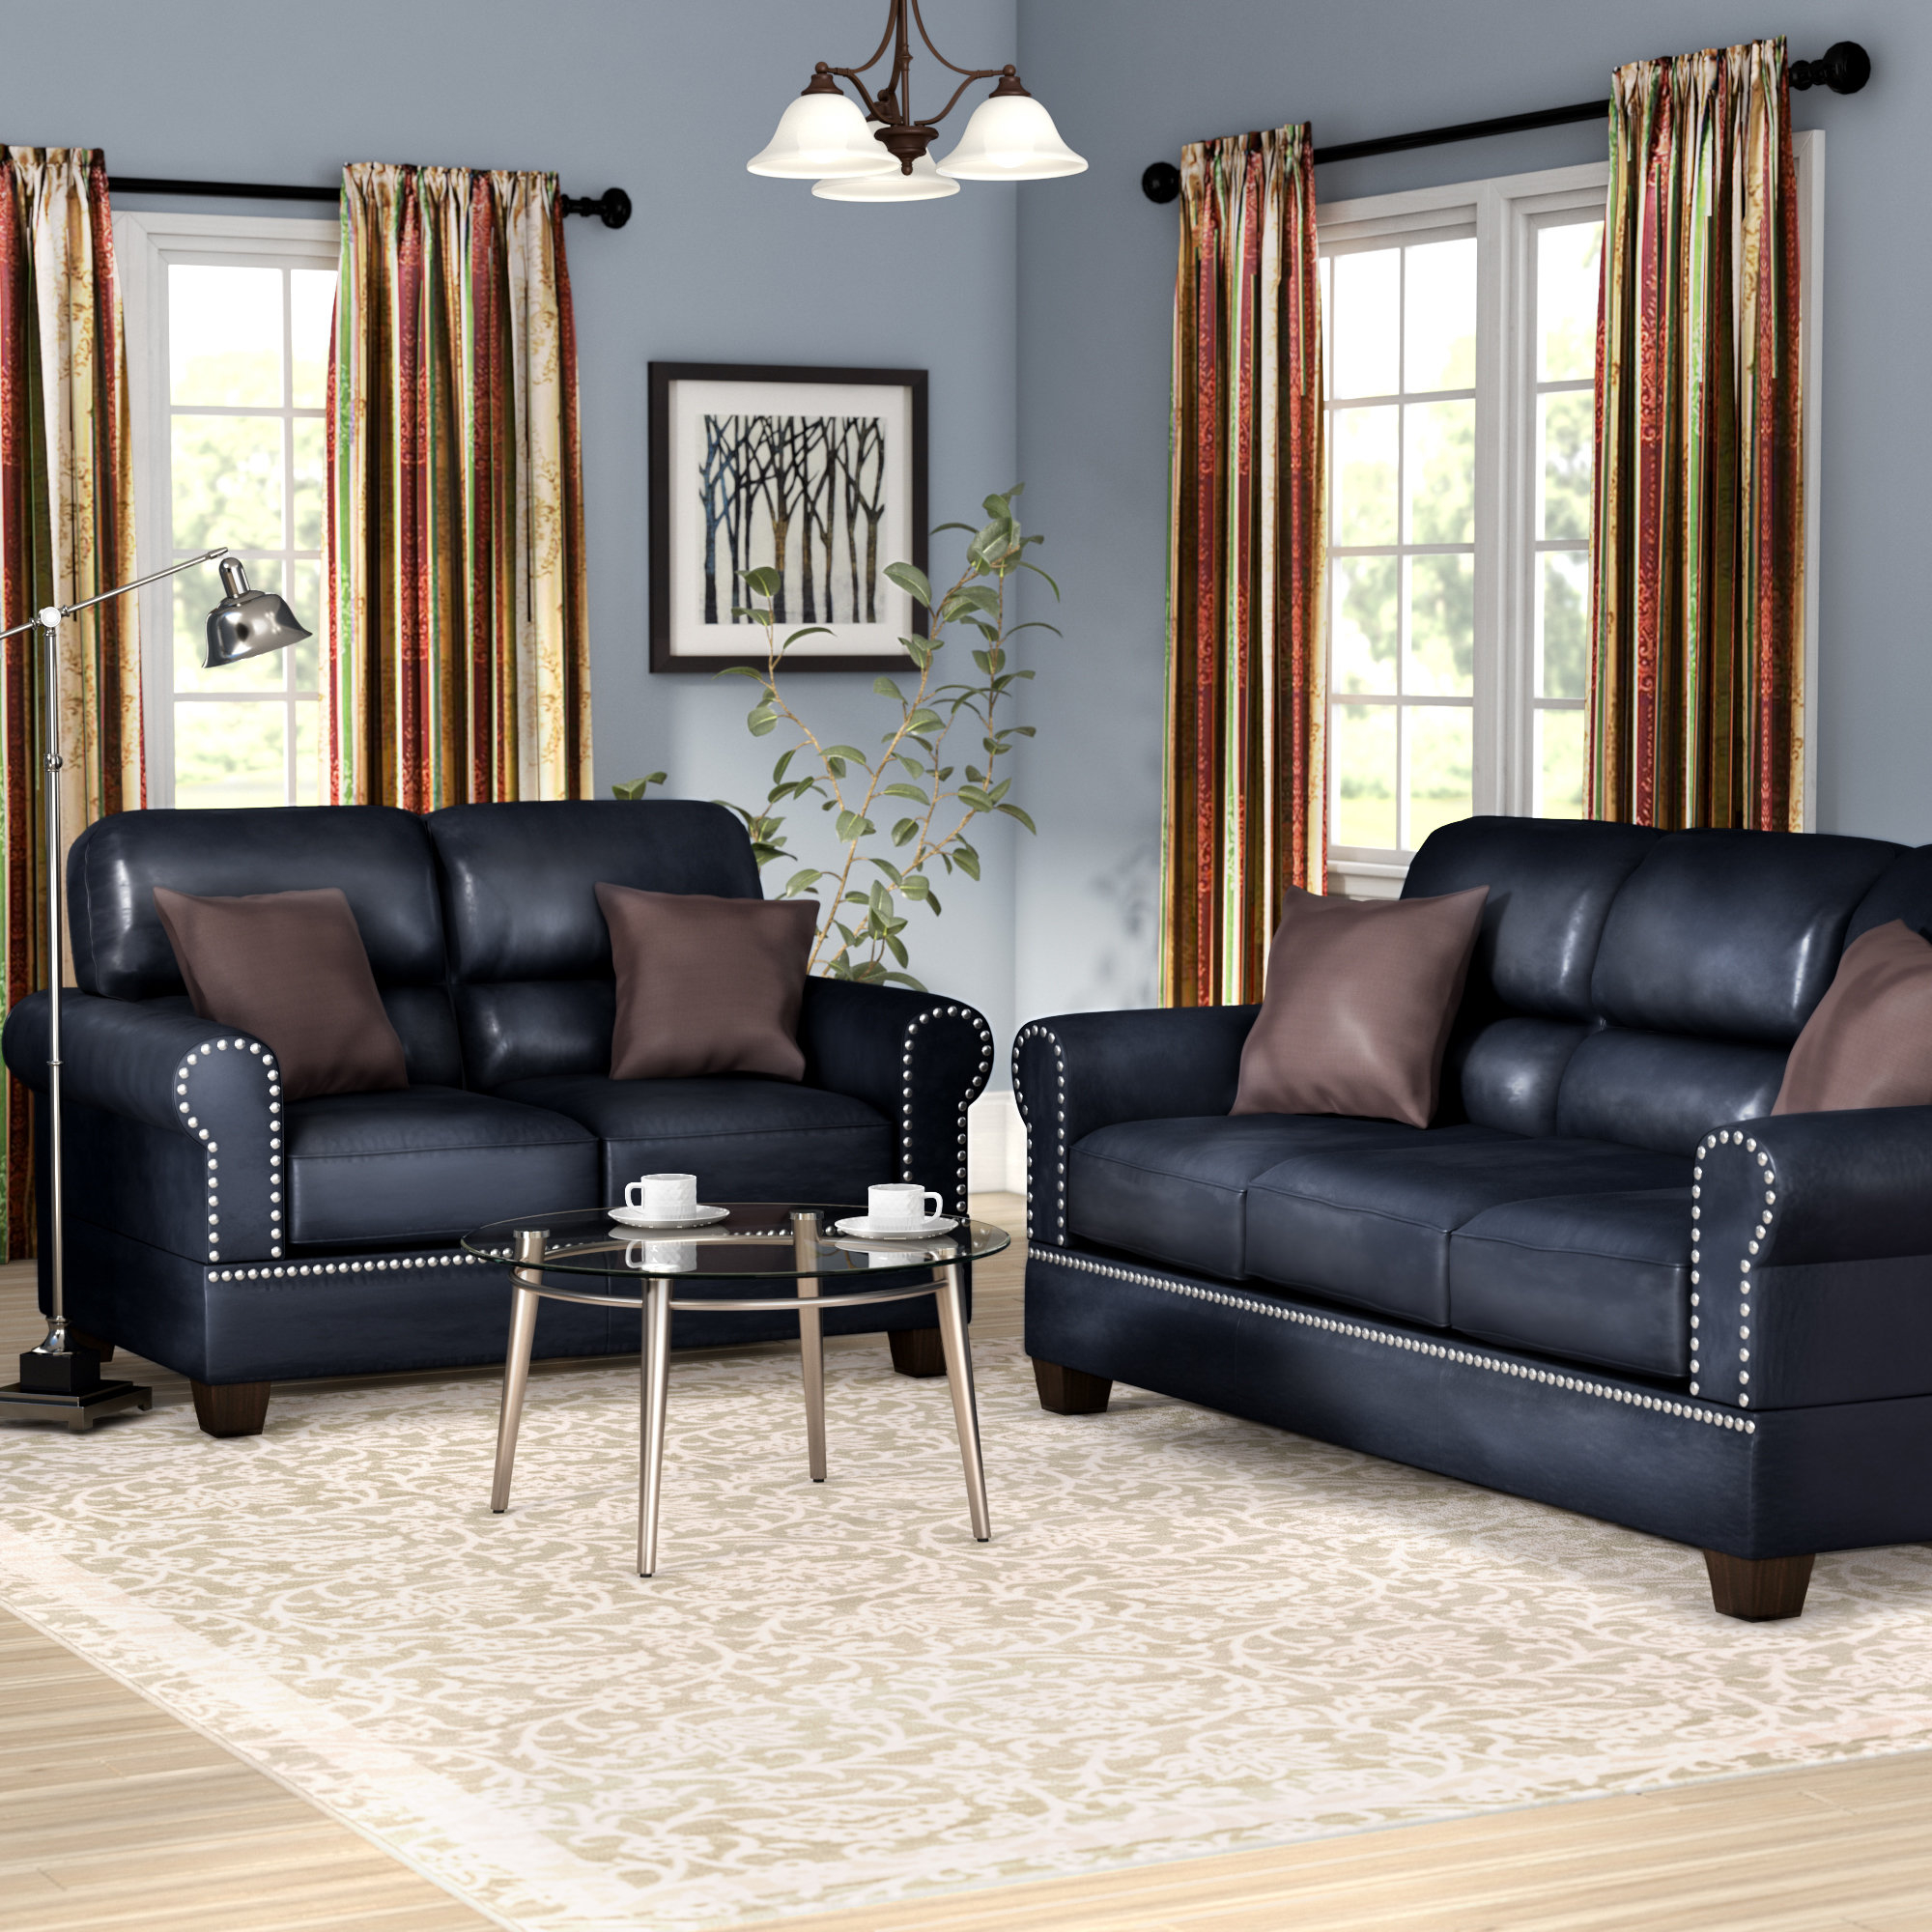 Charlton Home Boyster 2 Piece Living Room Set Reviews Wayfair with regard to Living Room Set For Cheap